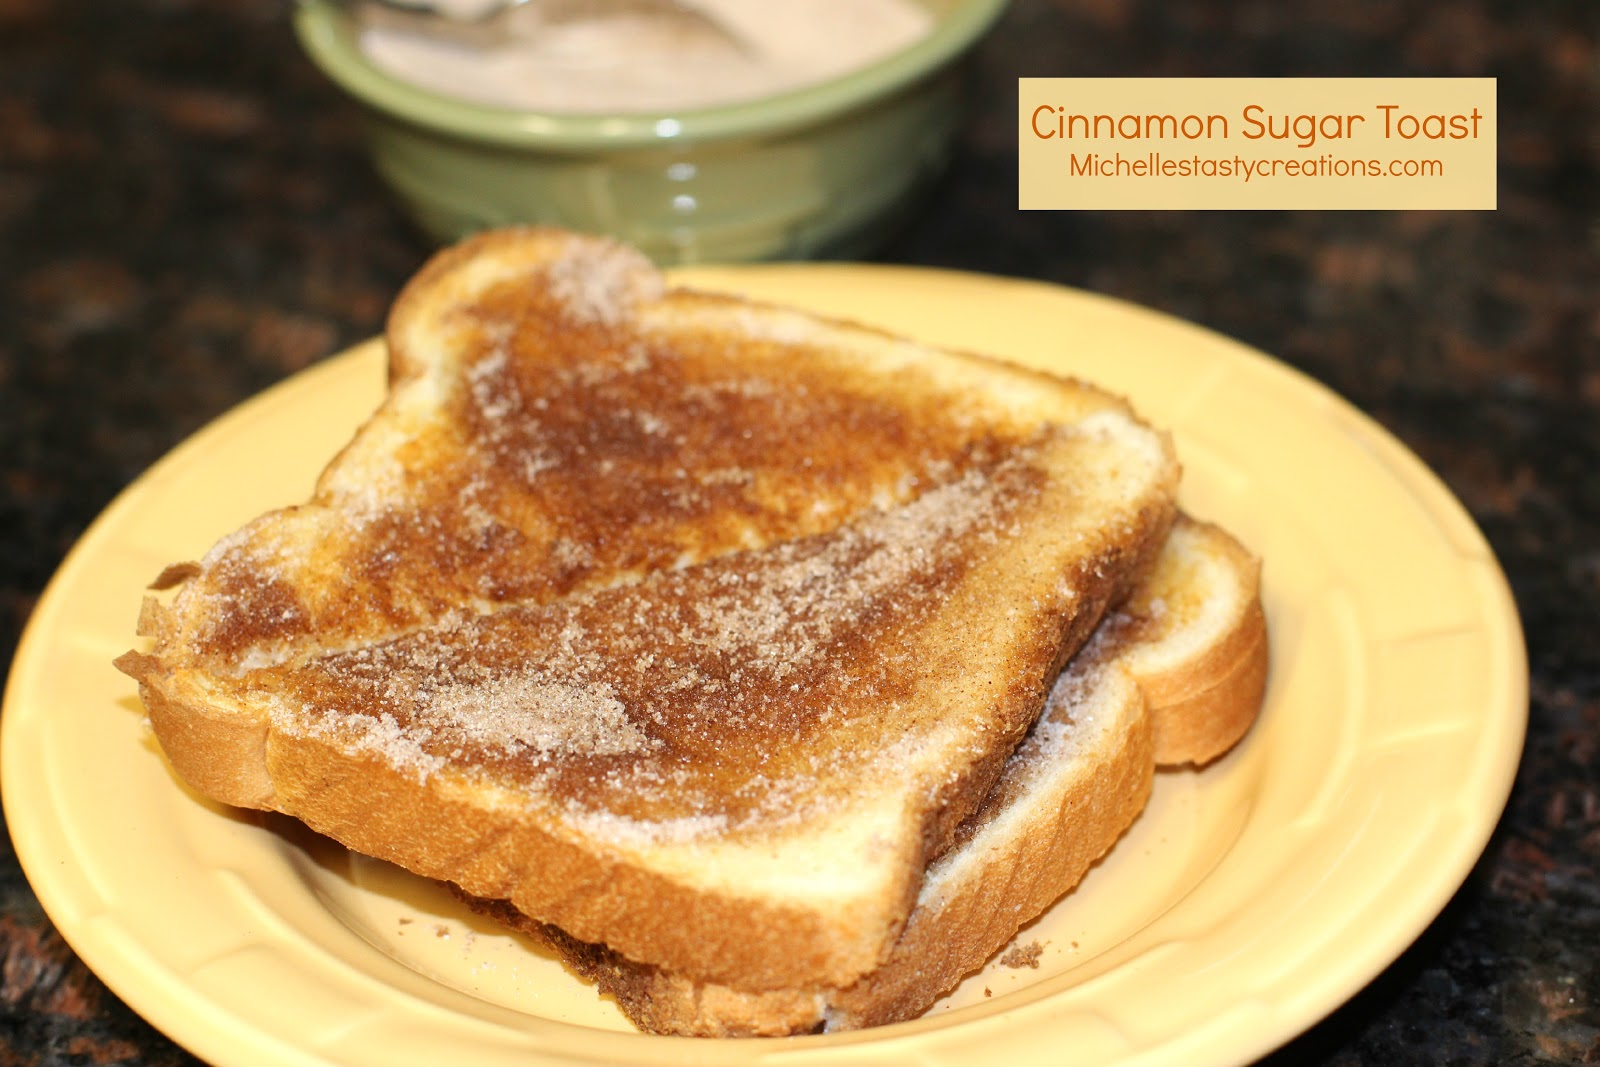 Michelle's Tasty Creations: Cinnamon Sugar Toast